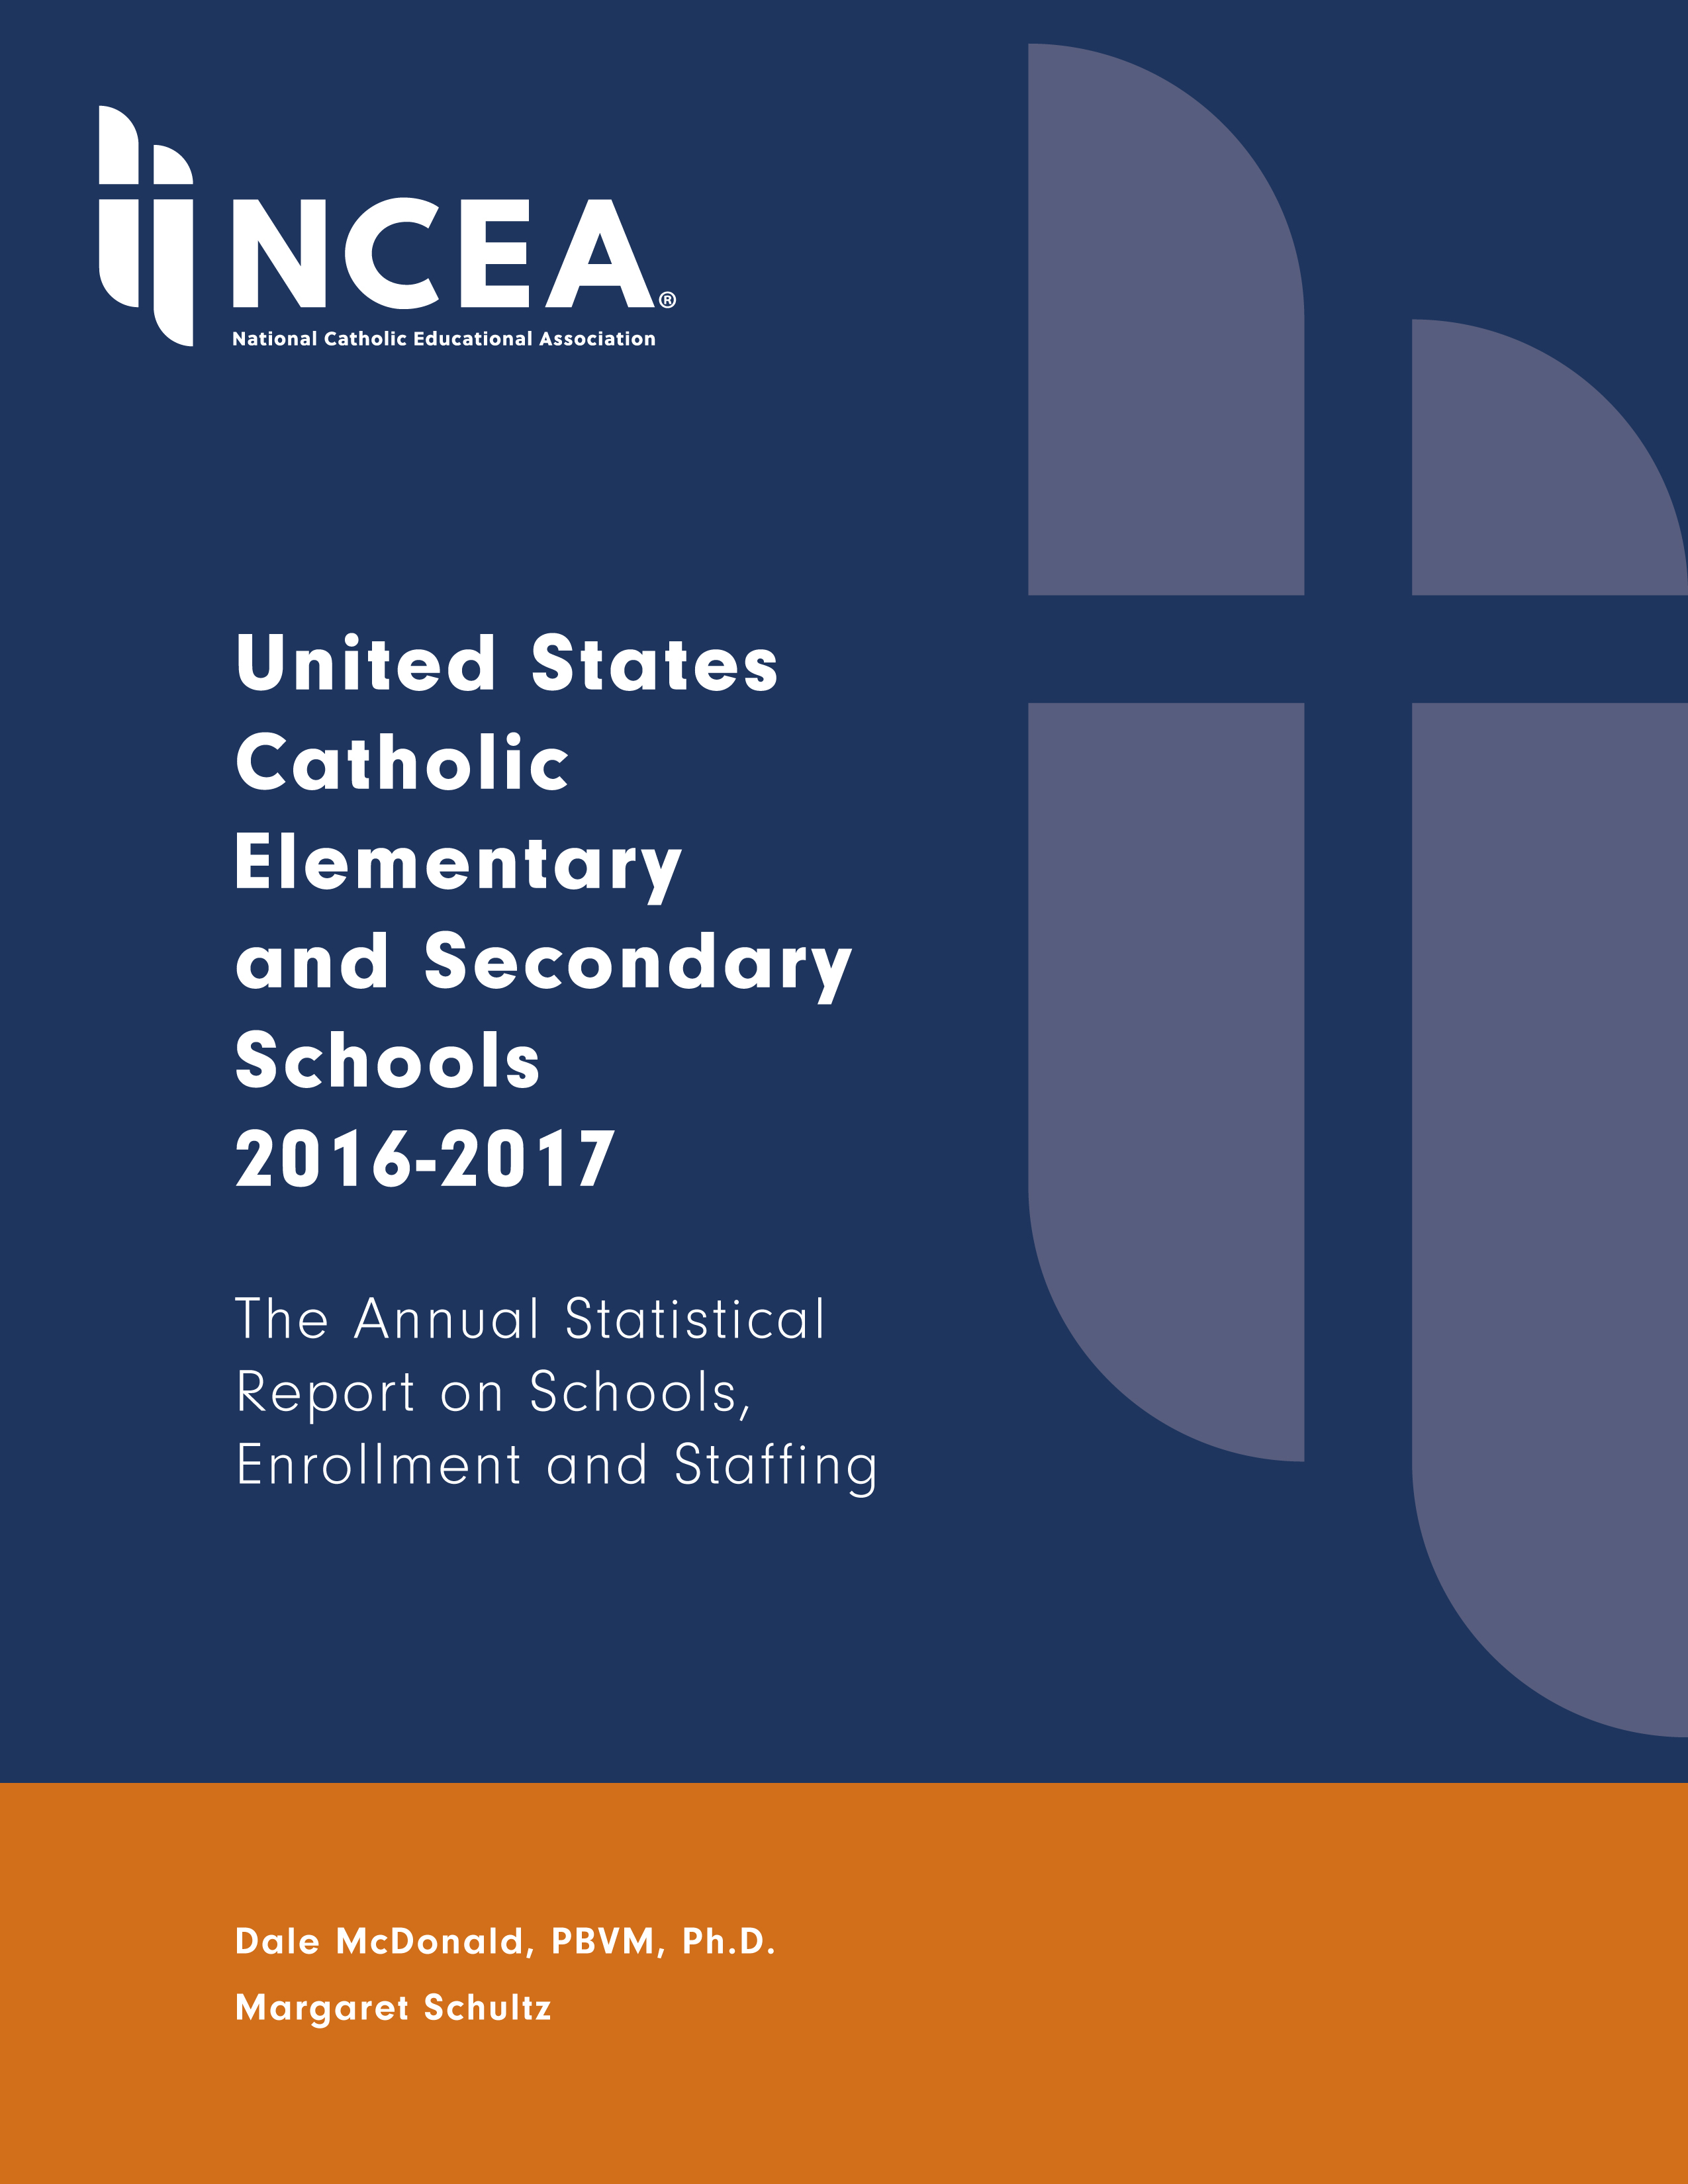 United States Catholic Elementary and Secondary Schools 2016-2017